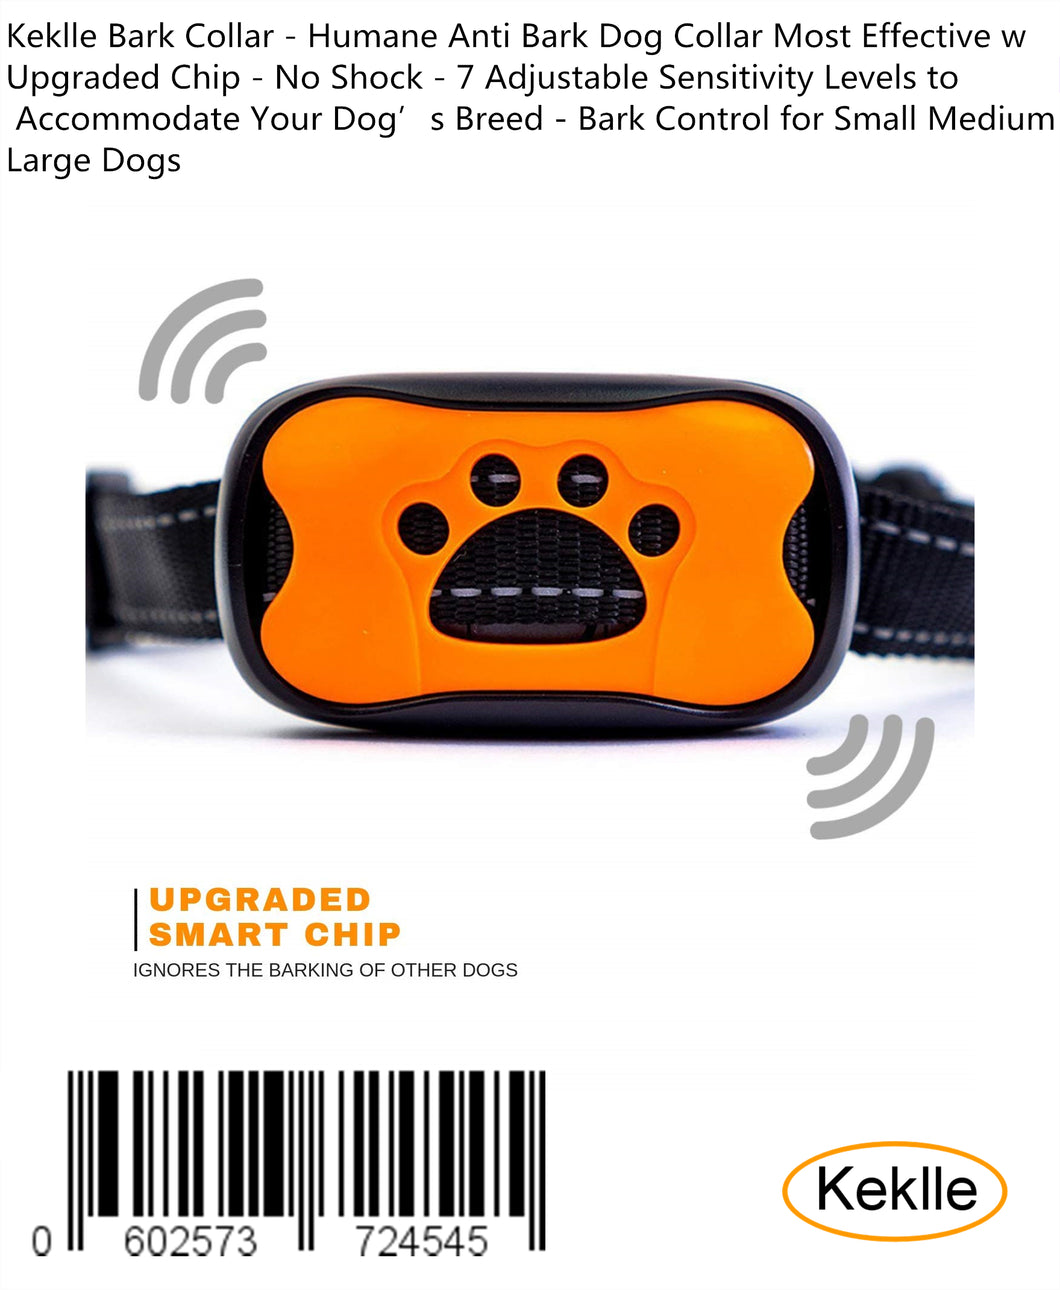 Keklle Bark Collar - Humane Anti Bark Dog Collar Most Effective w Upgraded Chip - No Shock - 7 Adjustable Sensitivity Levels to Accommodate Your Dog's Breed - Bark Control for Small Medium Large Dogs